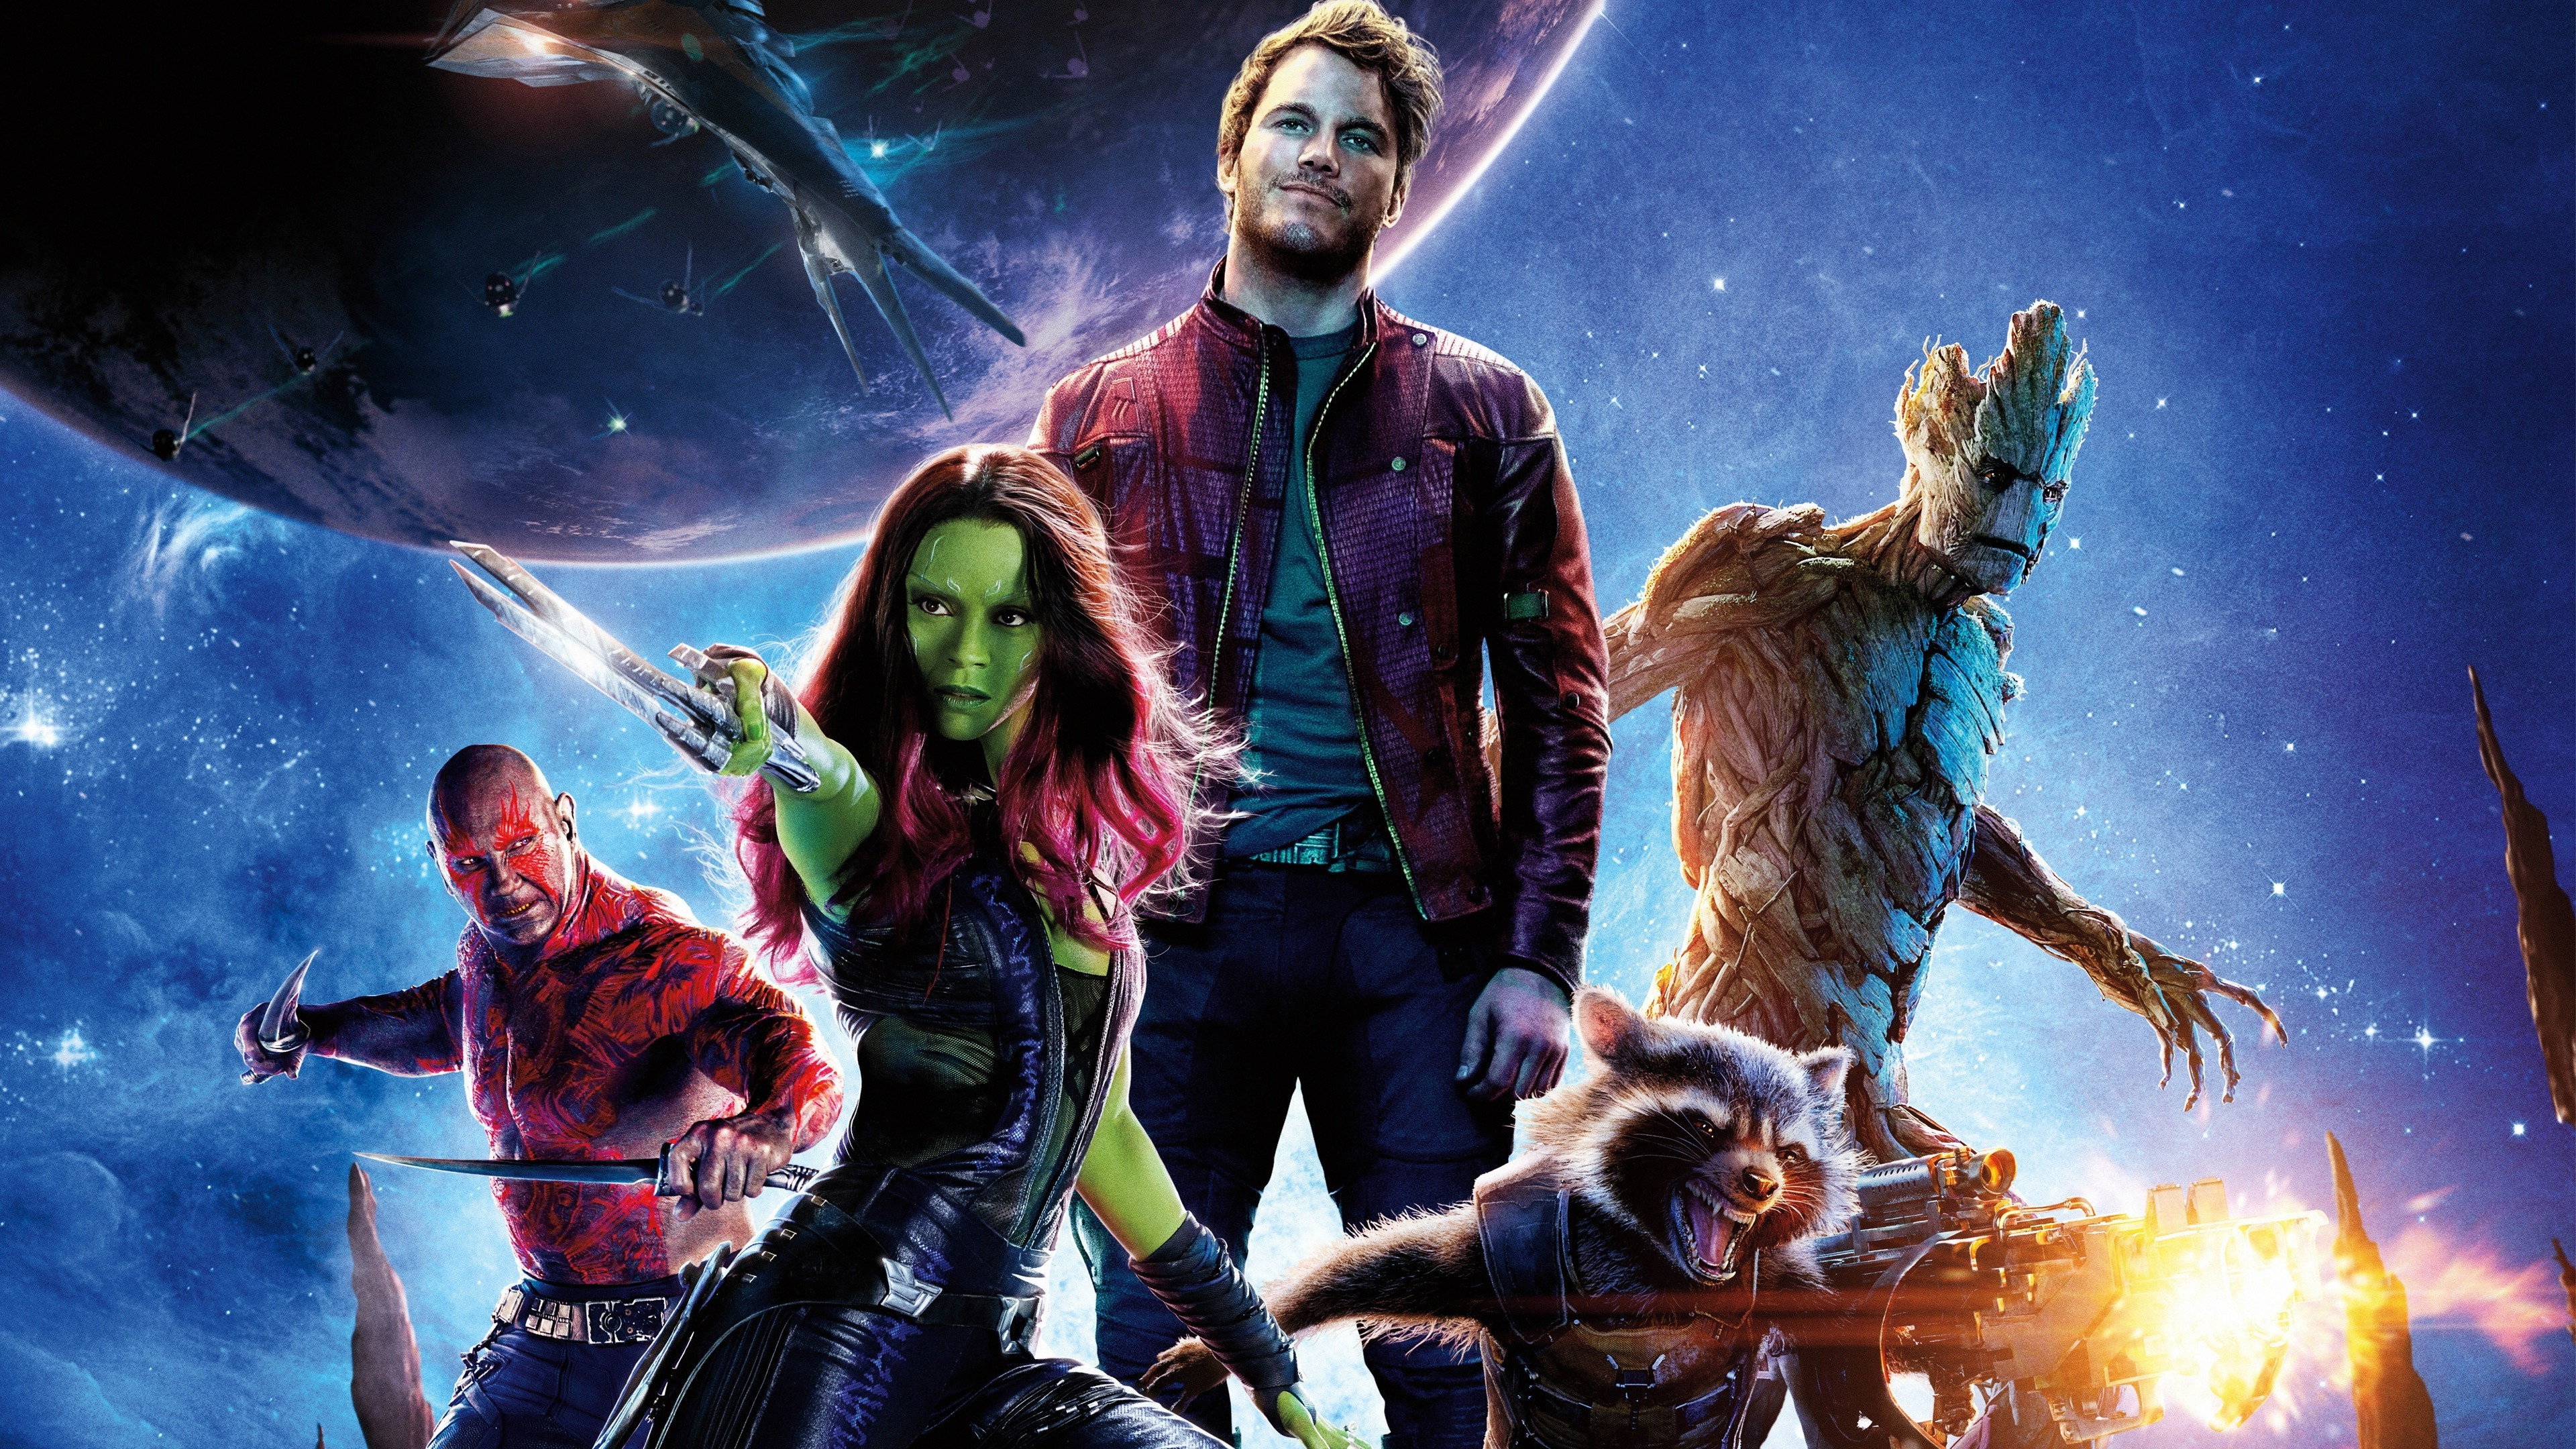 Photo of 5 Superheroes You Didn't Know Were Part of 'Guardians of the Galaxy'